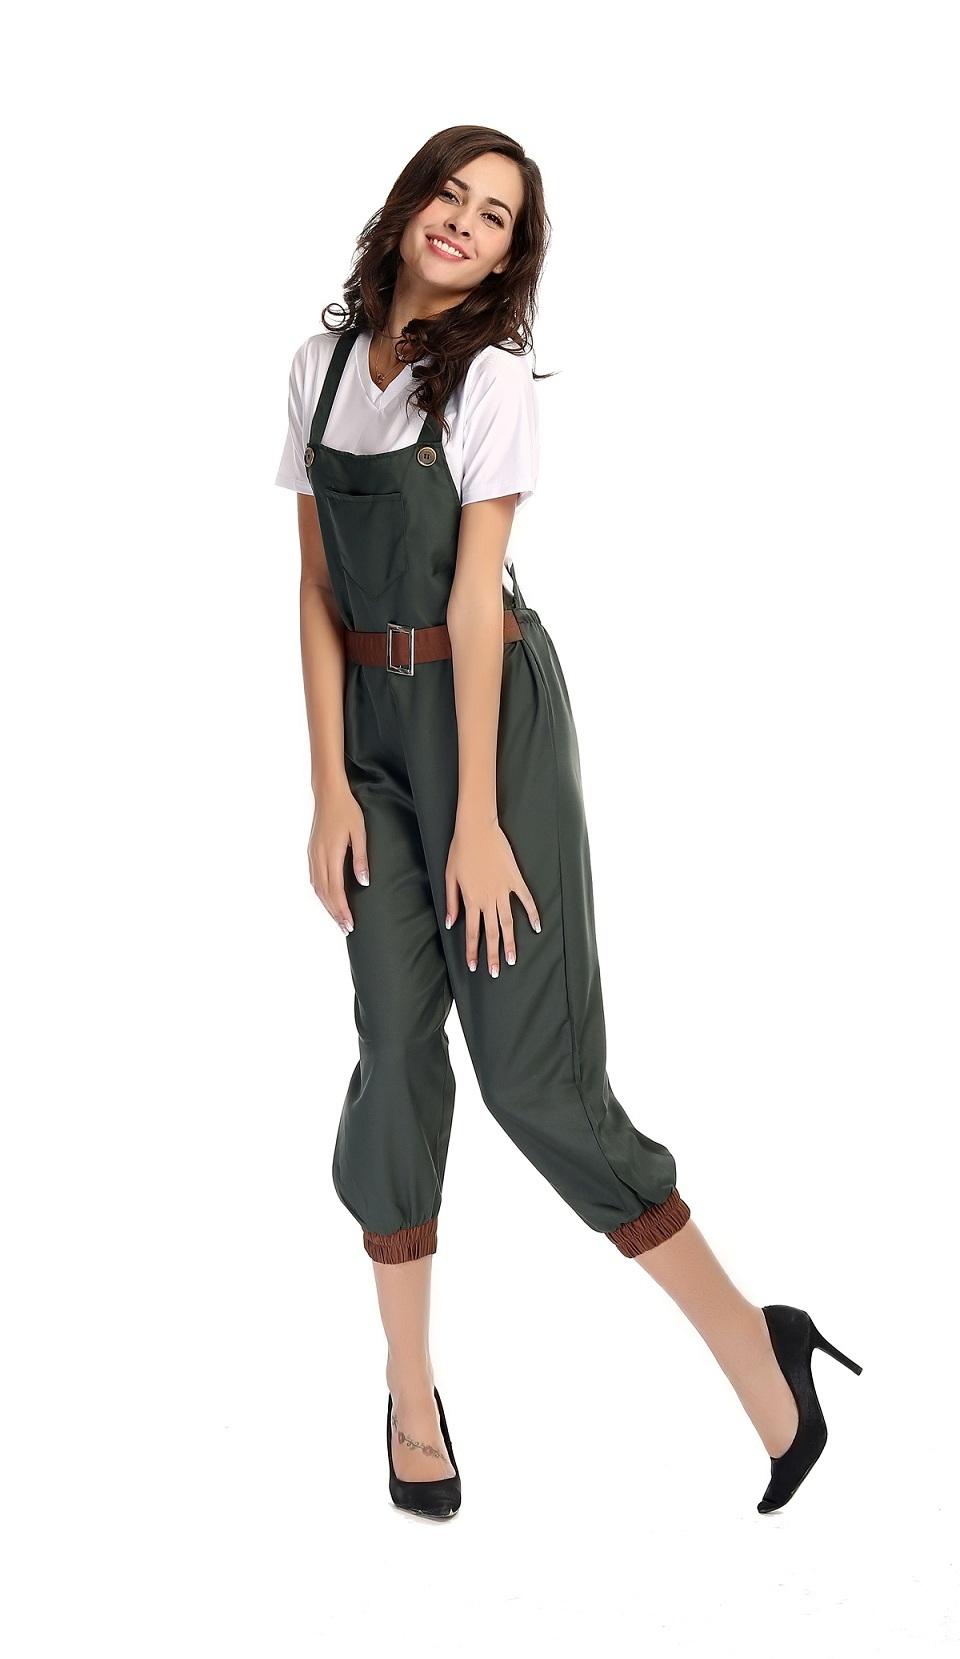 halloween dress female farmer workers cosplay costume installed ...